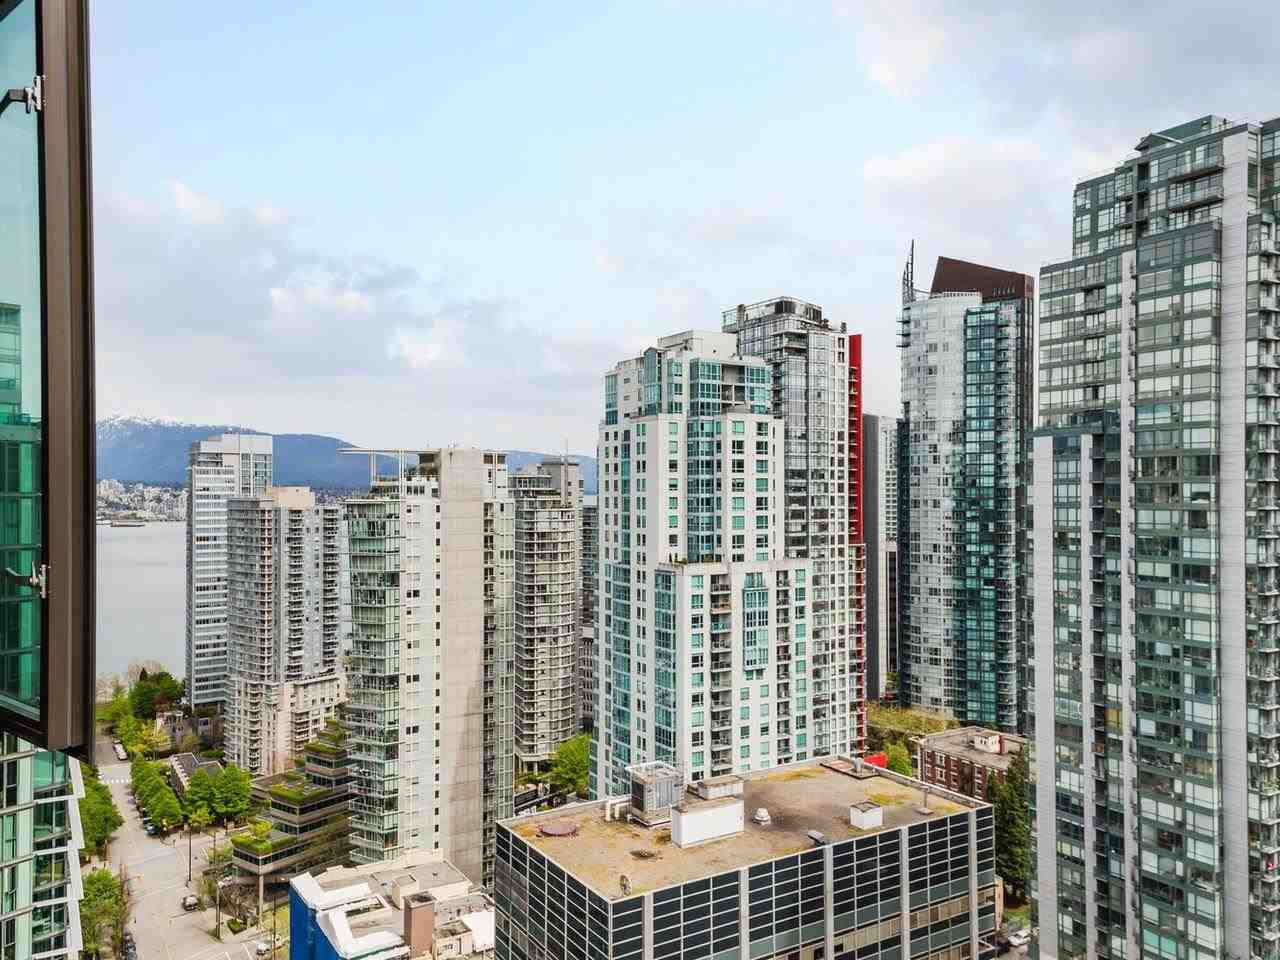 2701 1331 ALBERNI STREET - West End VW Apartment/Condo for sale, 3 Bedrooms (R2576100) - #23